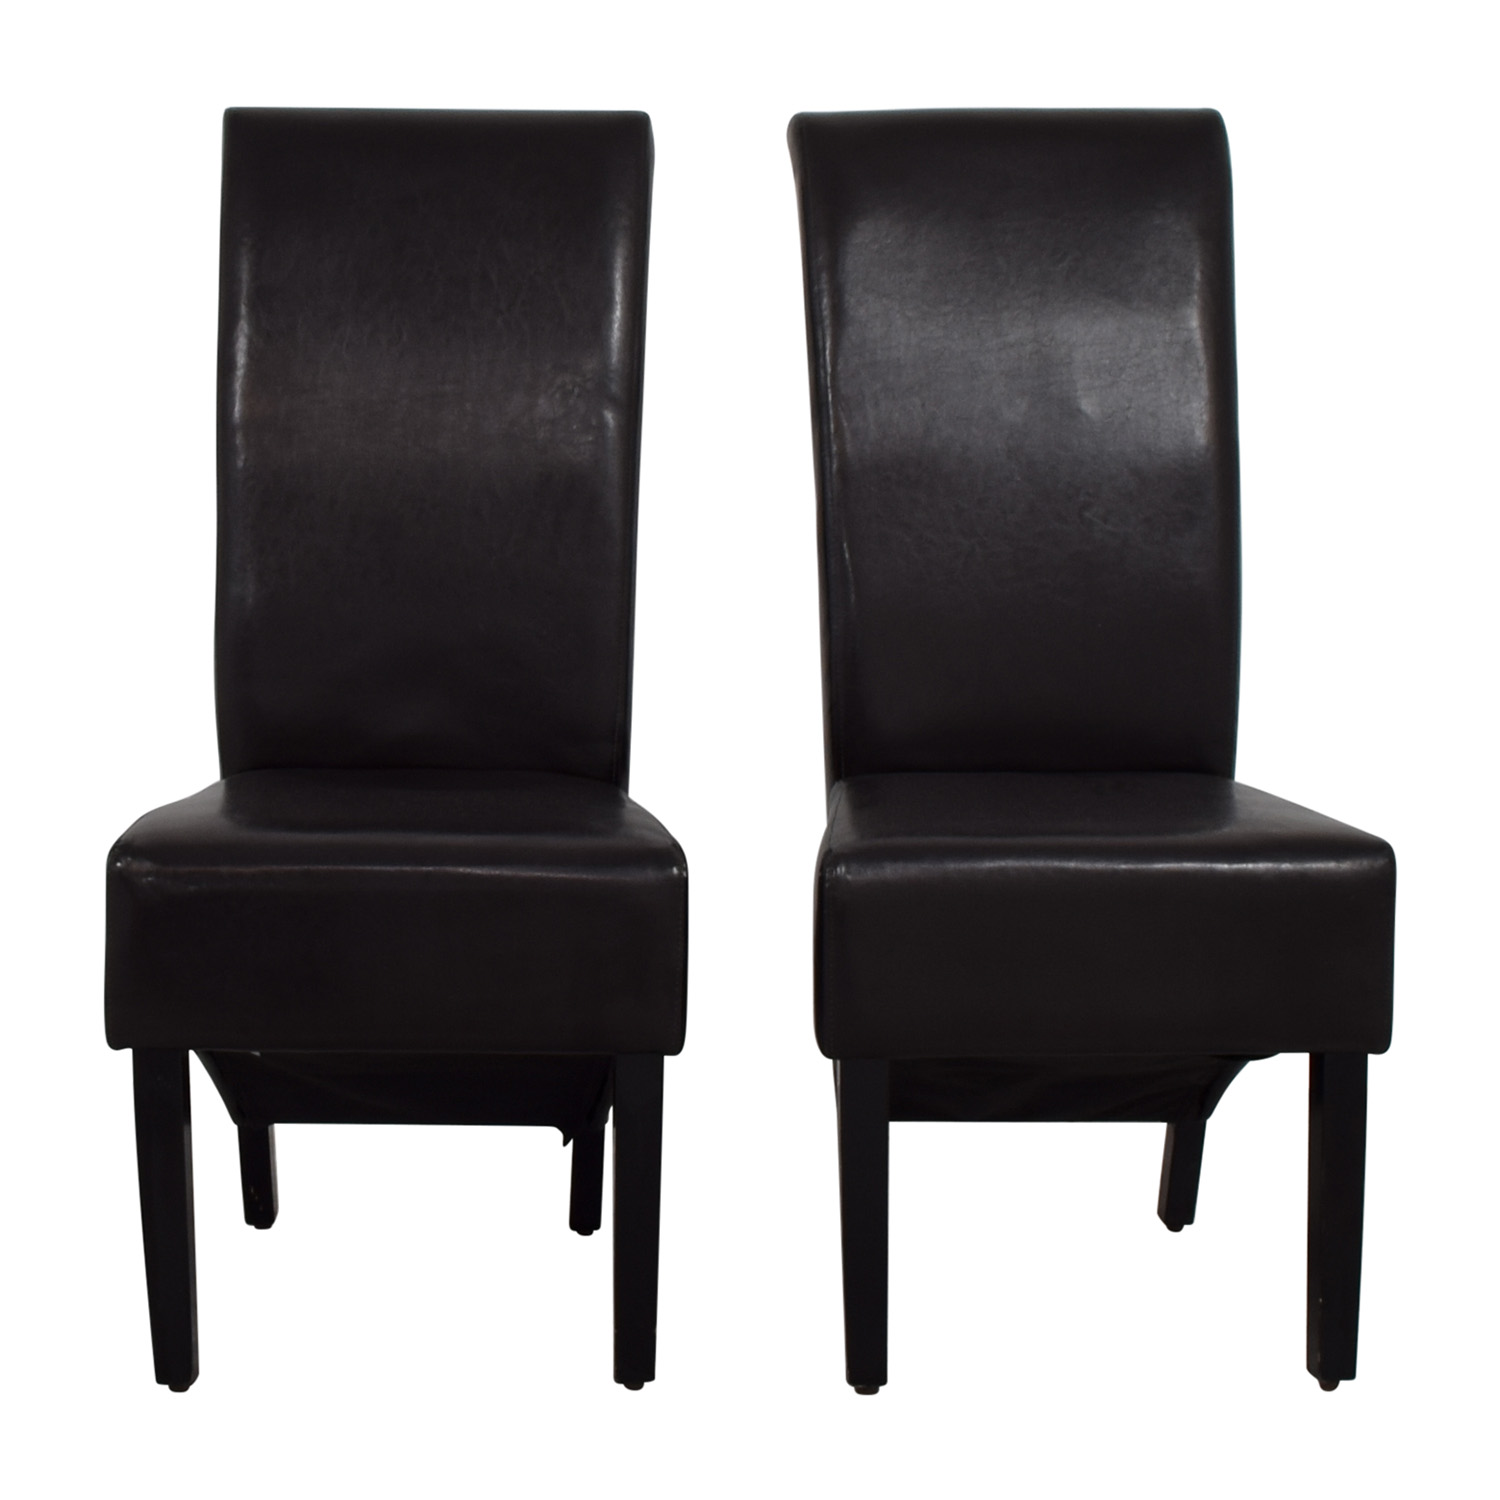 Padded Brown Leatherette High Back Dining Chairs Dark Chocolate